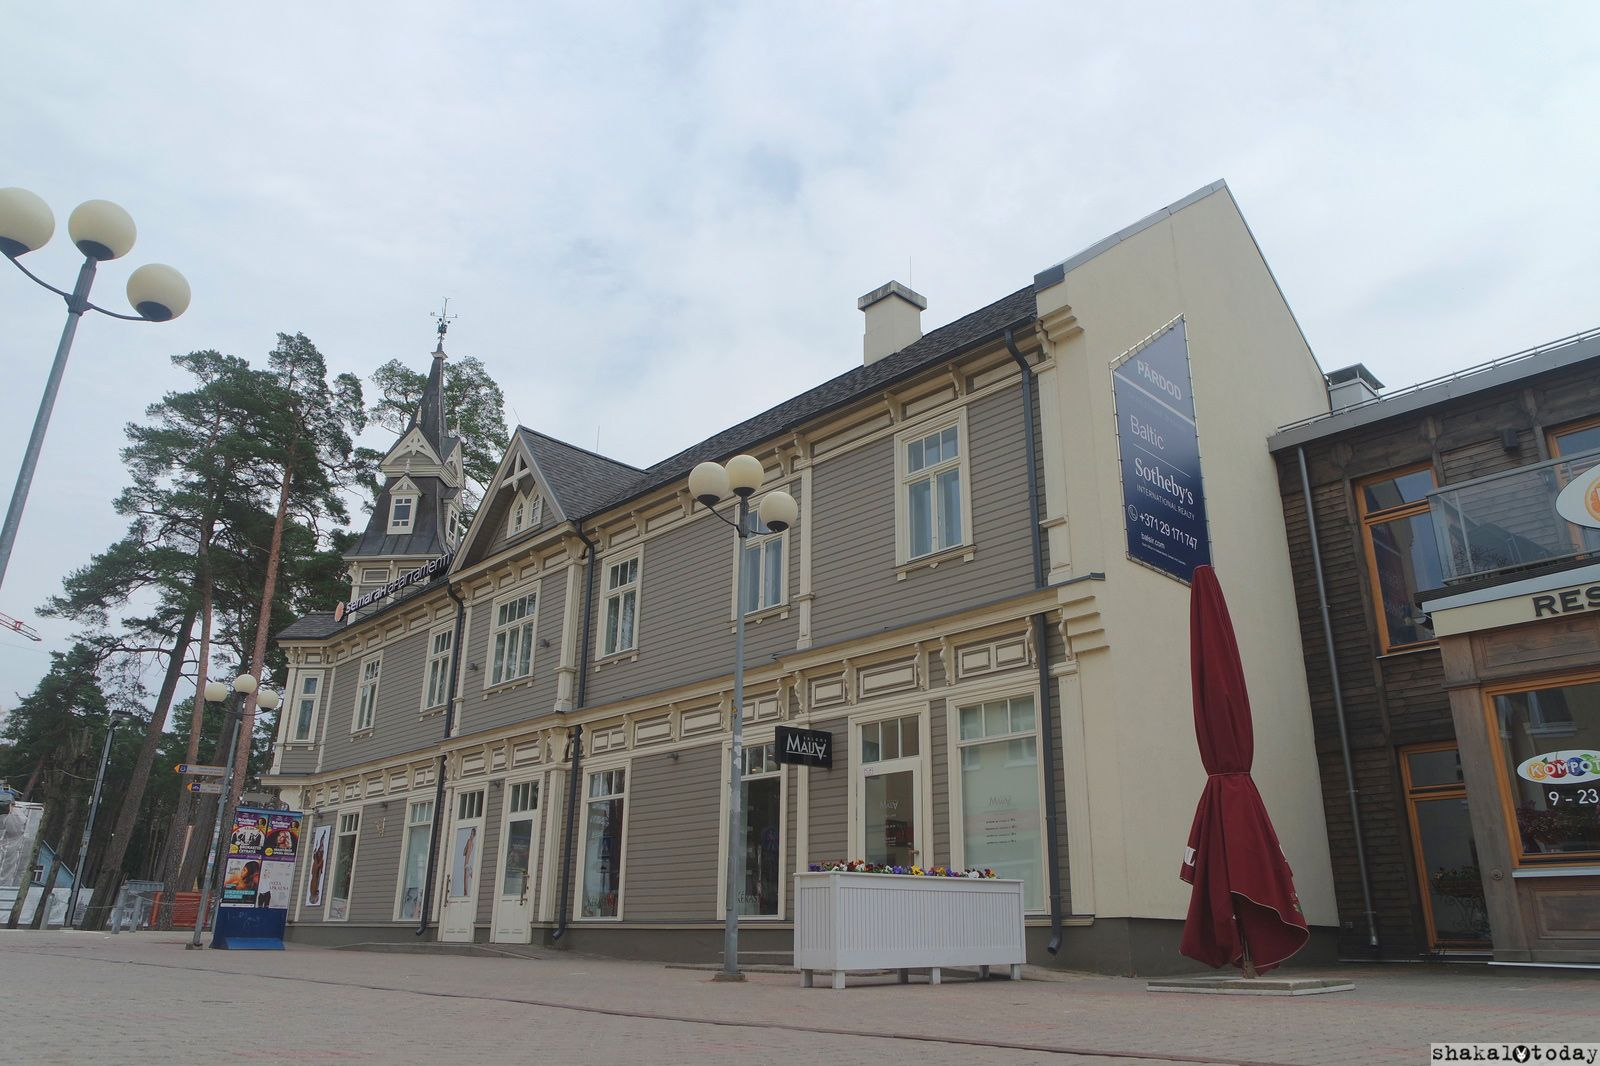 jurmala-shakal-today-0023.jpg